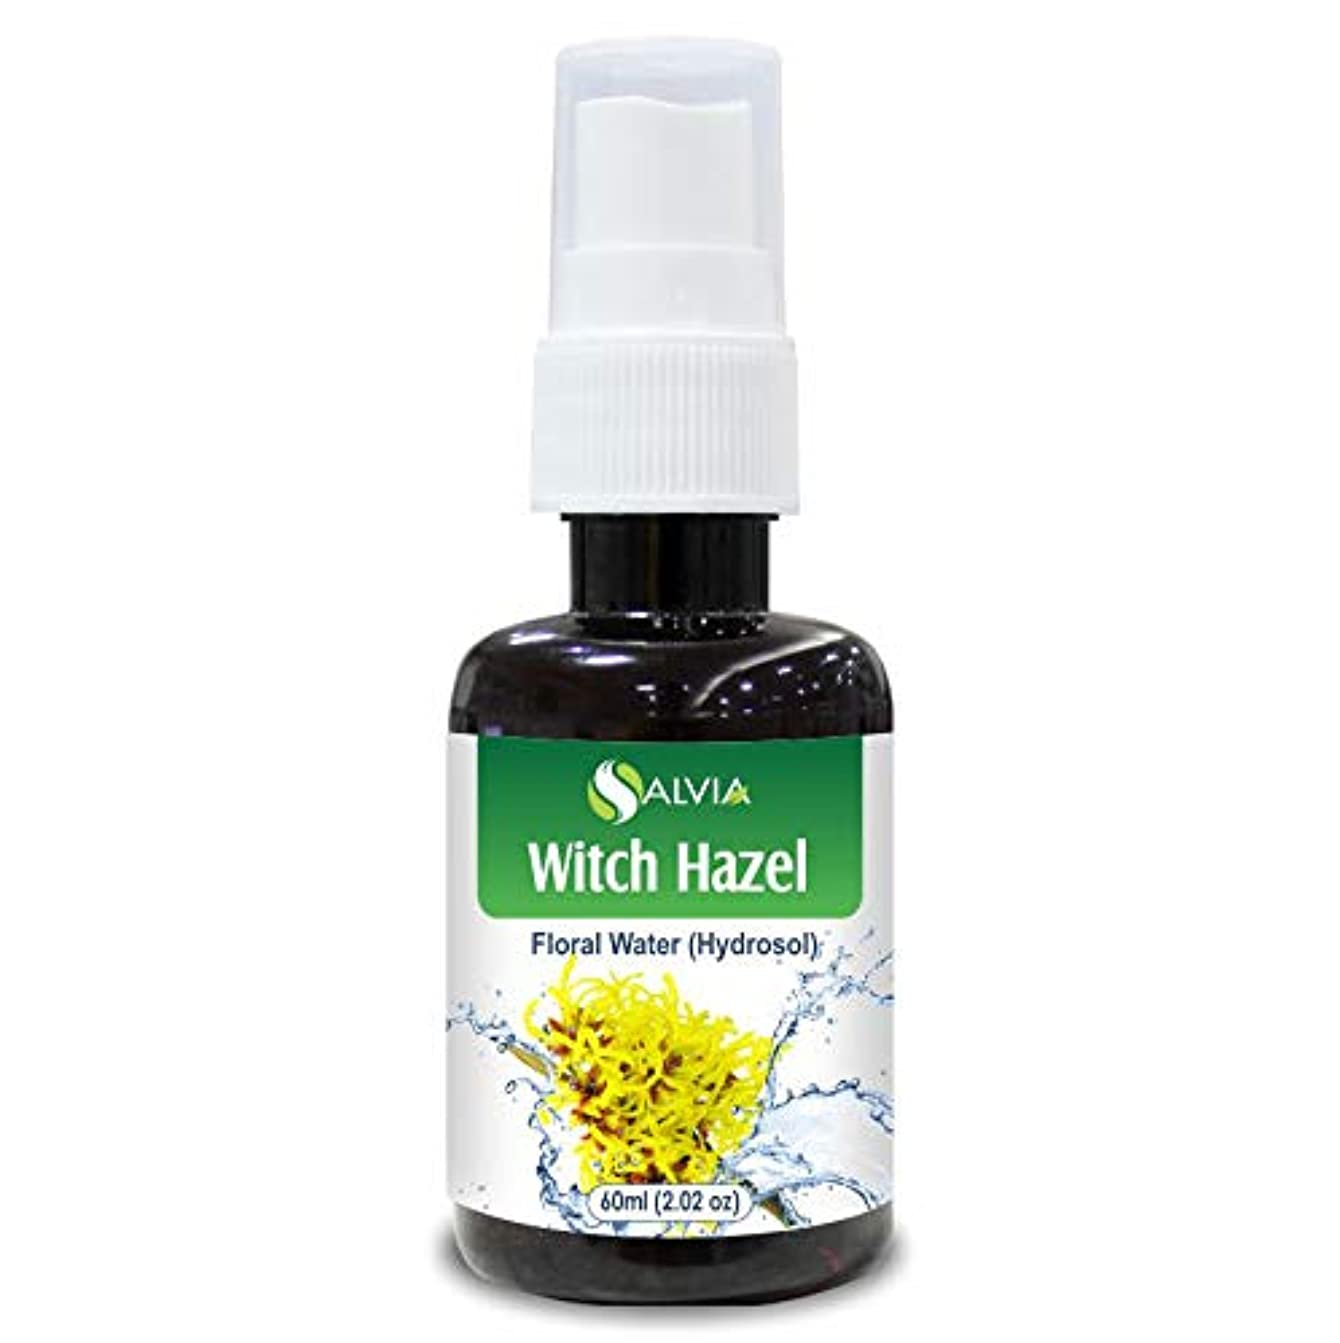 流体ワイプ異なるWitch Hazel Floral Water 60ml (Hydrosol) 100% Pure And Natural